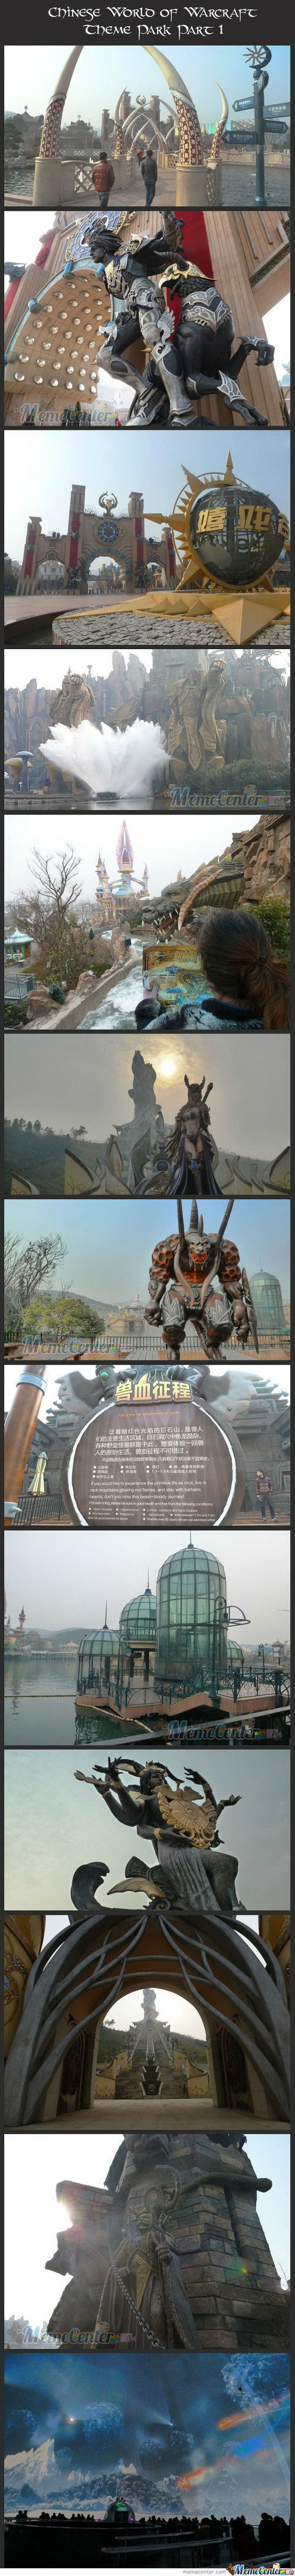 Chinese World Of Warcraft Theme Park. 1/2